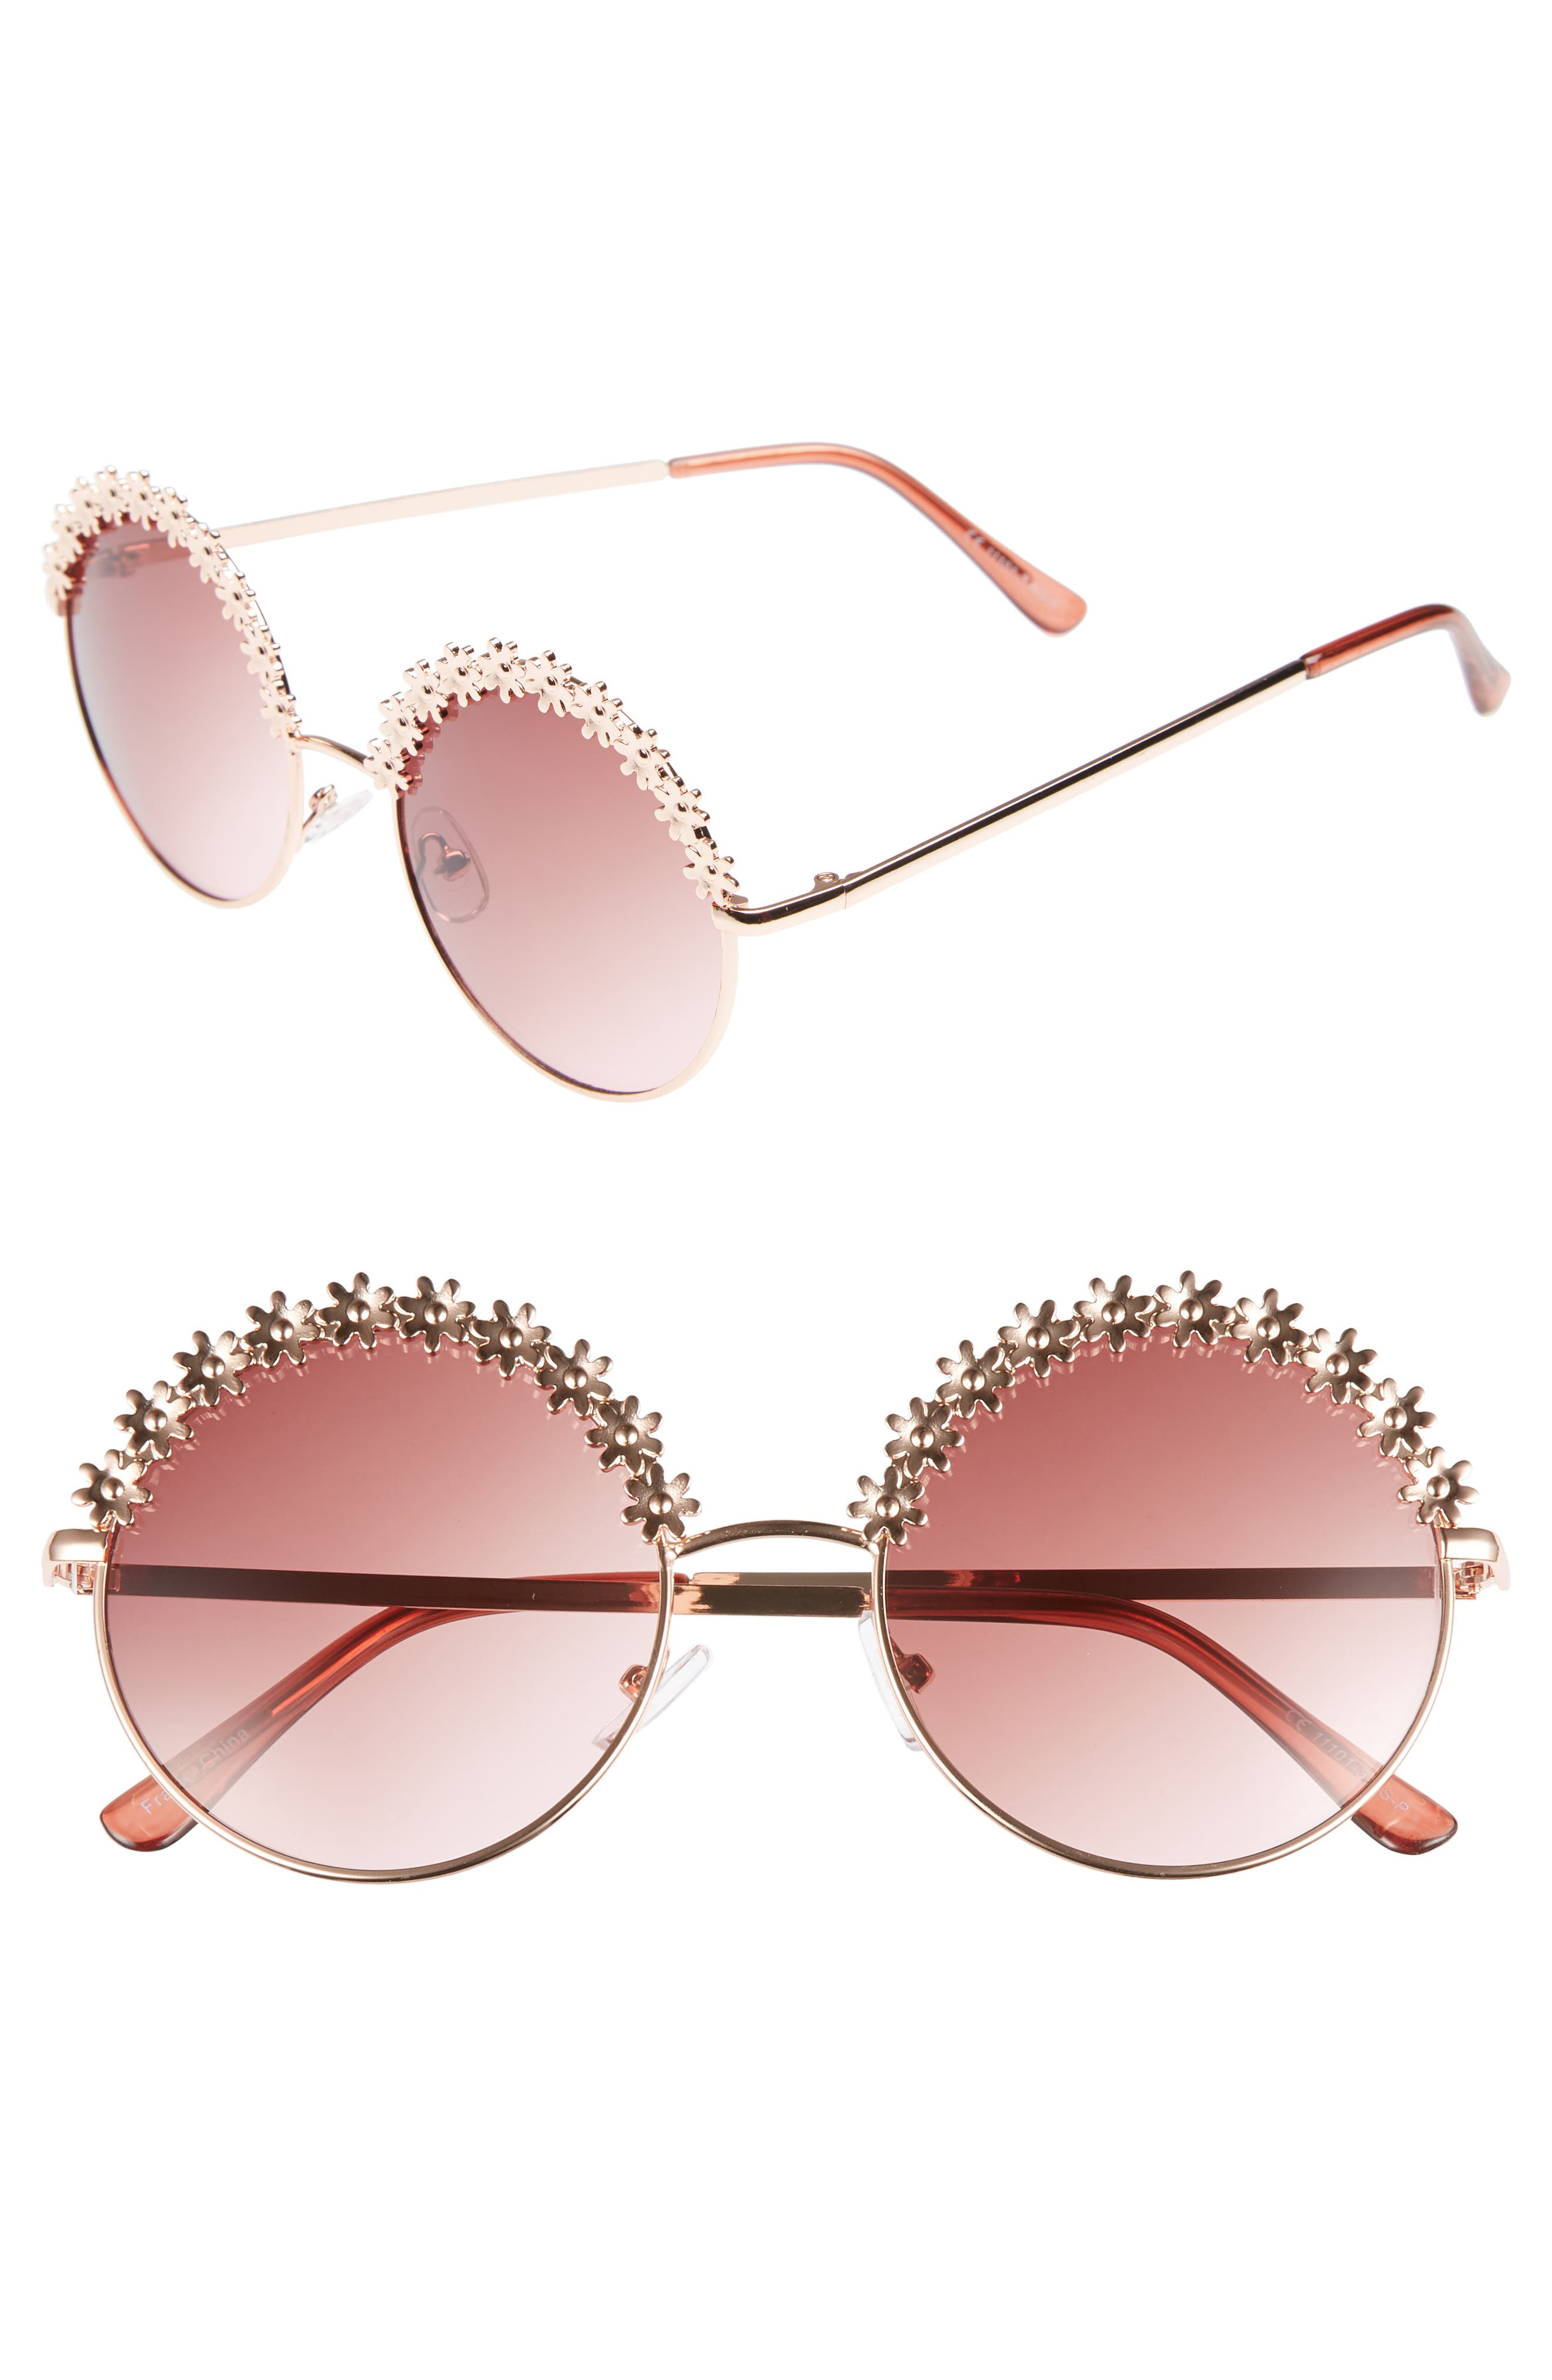 52mm Flower Trim Round Sunglasses,                         Main,                         color, GOLD